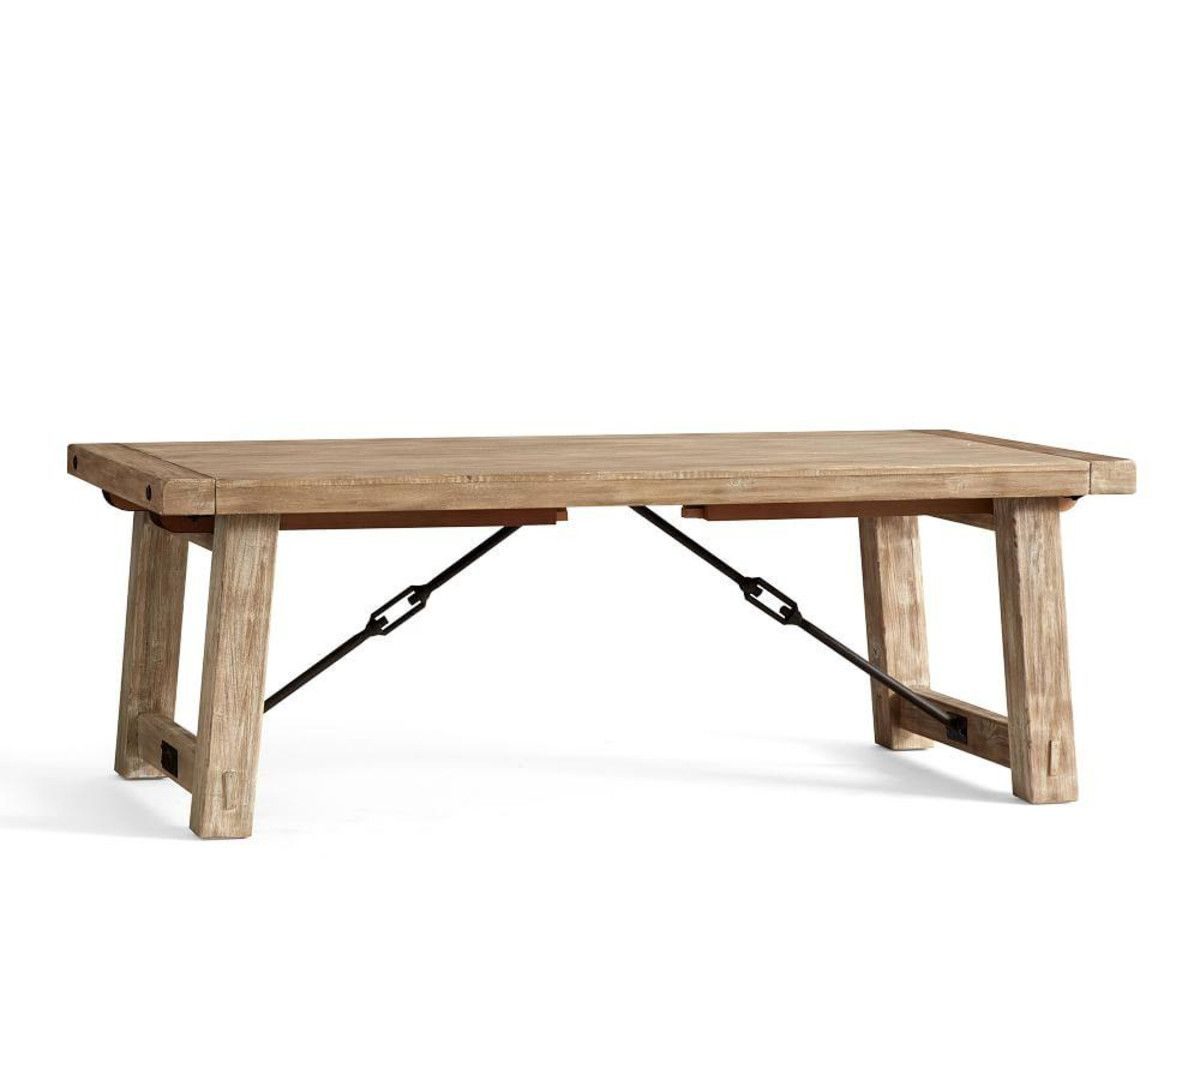 Benchwright Extending Dining Table, Seadrift | Kitchen Love Intended For Most Current Gray Wash Benchwright Extending Dining Tables (View 2 of 25)